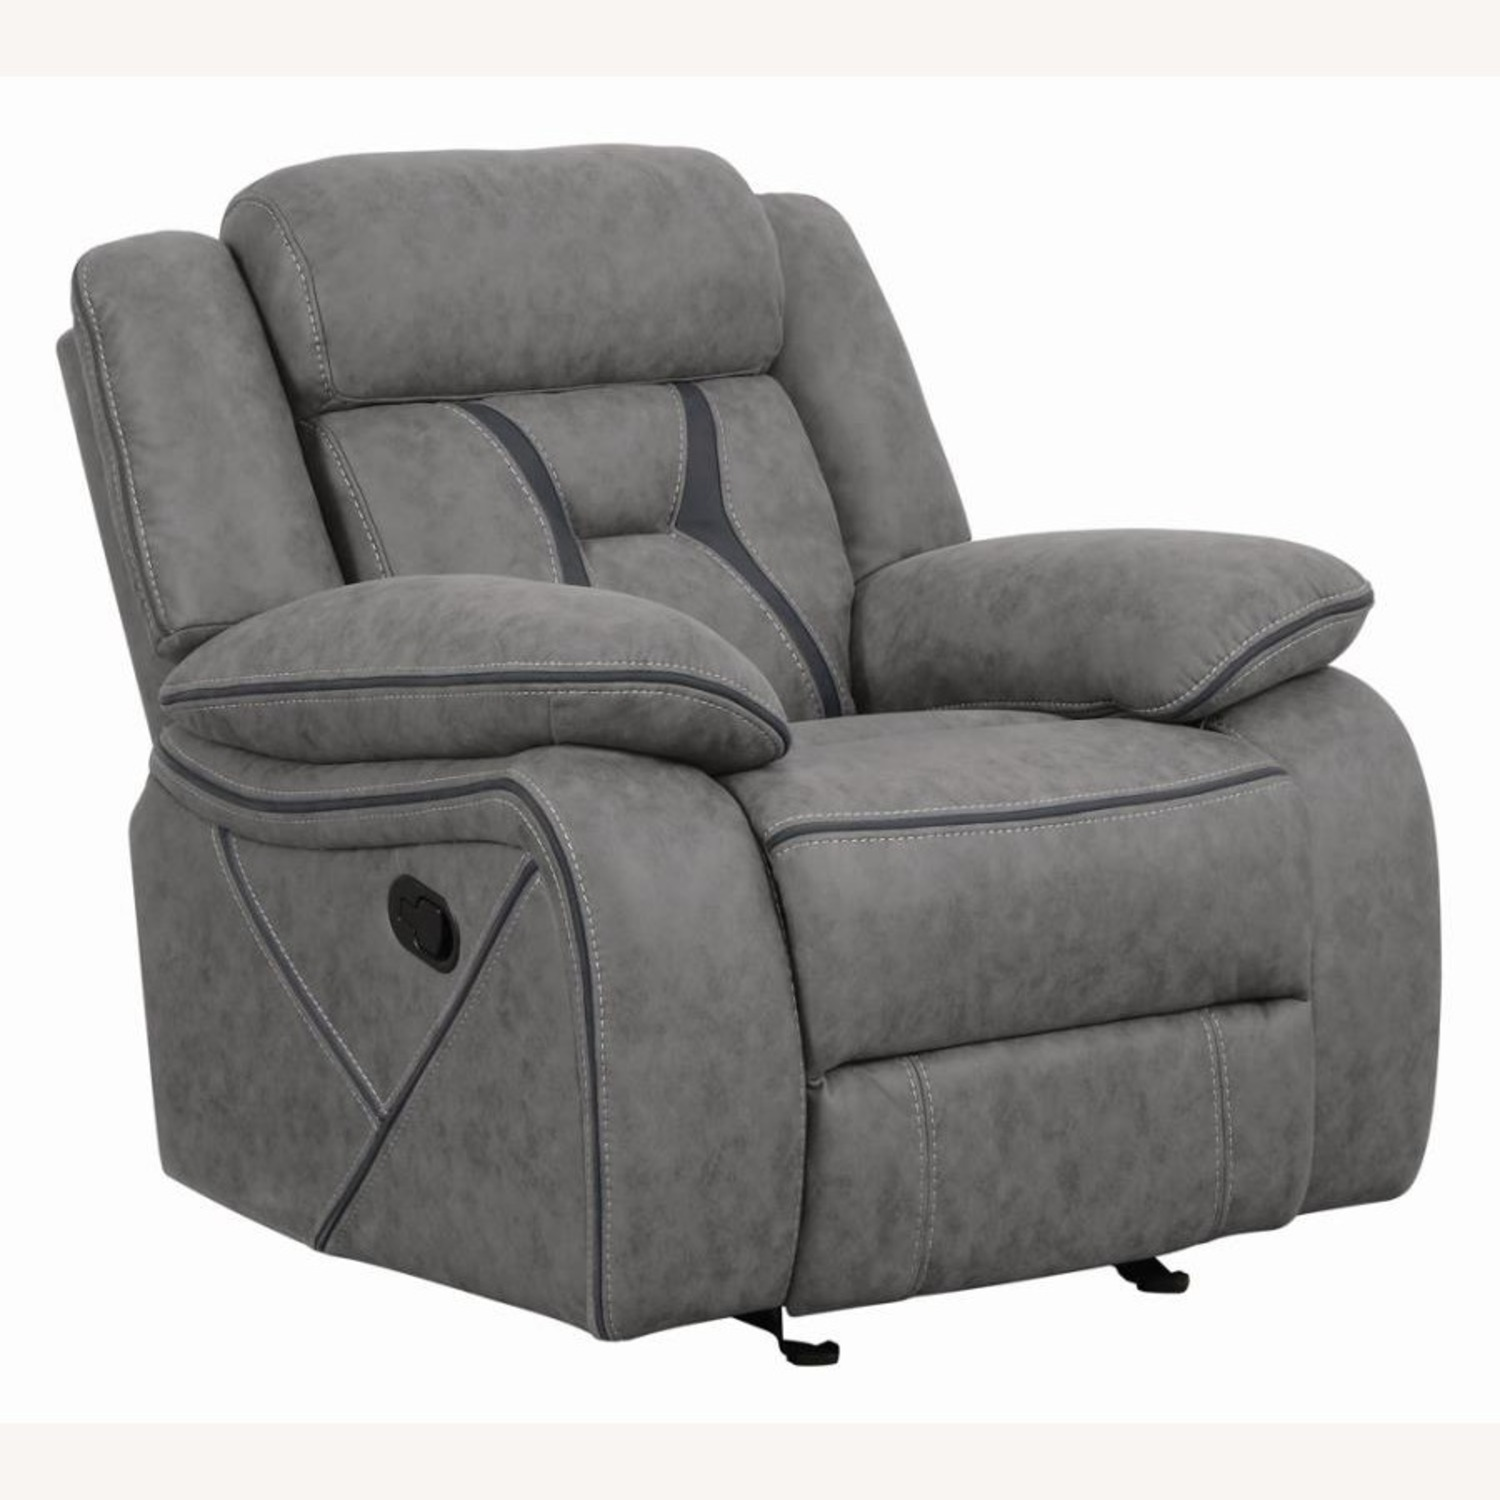 Glider Recliner Chair In Grey Suede Fabric - image-1